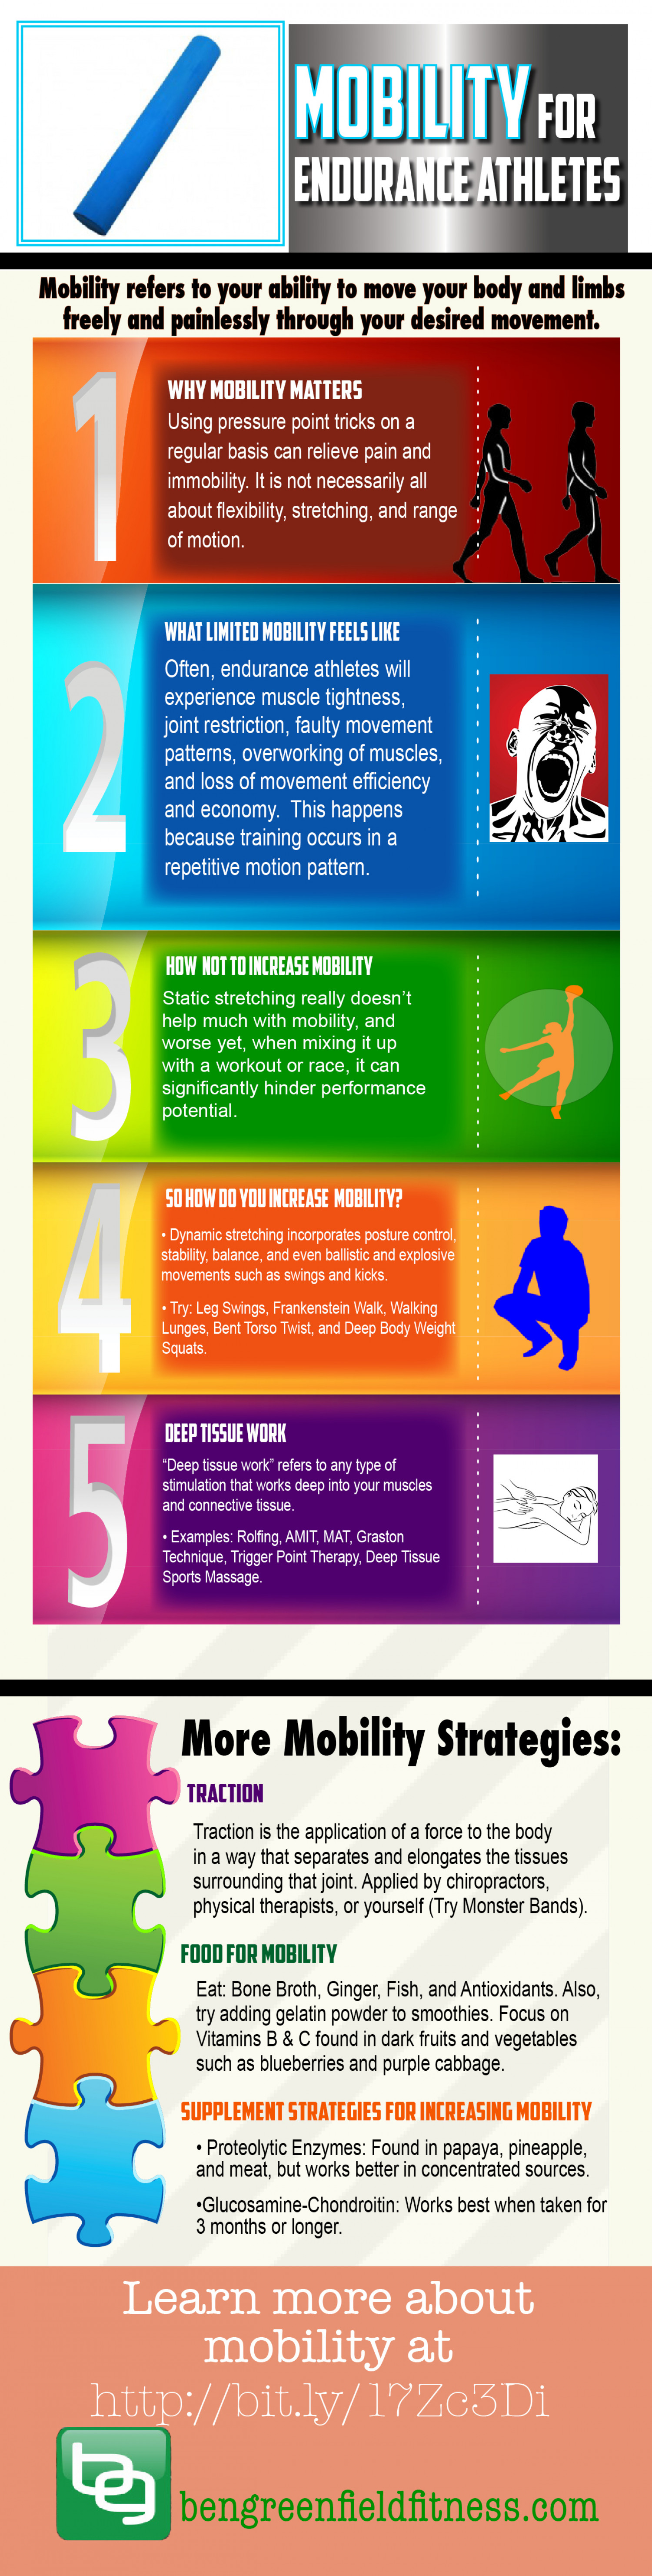 Mobility As An Essential Element of an Endurance Training Program Infographic